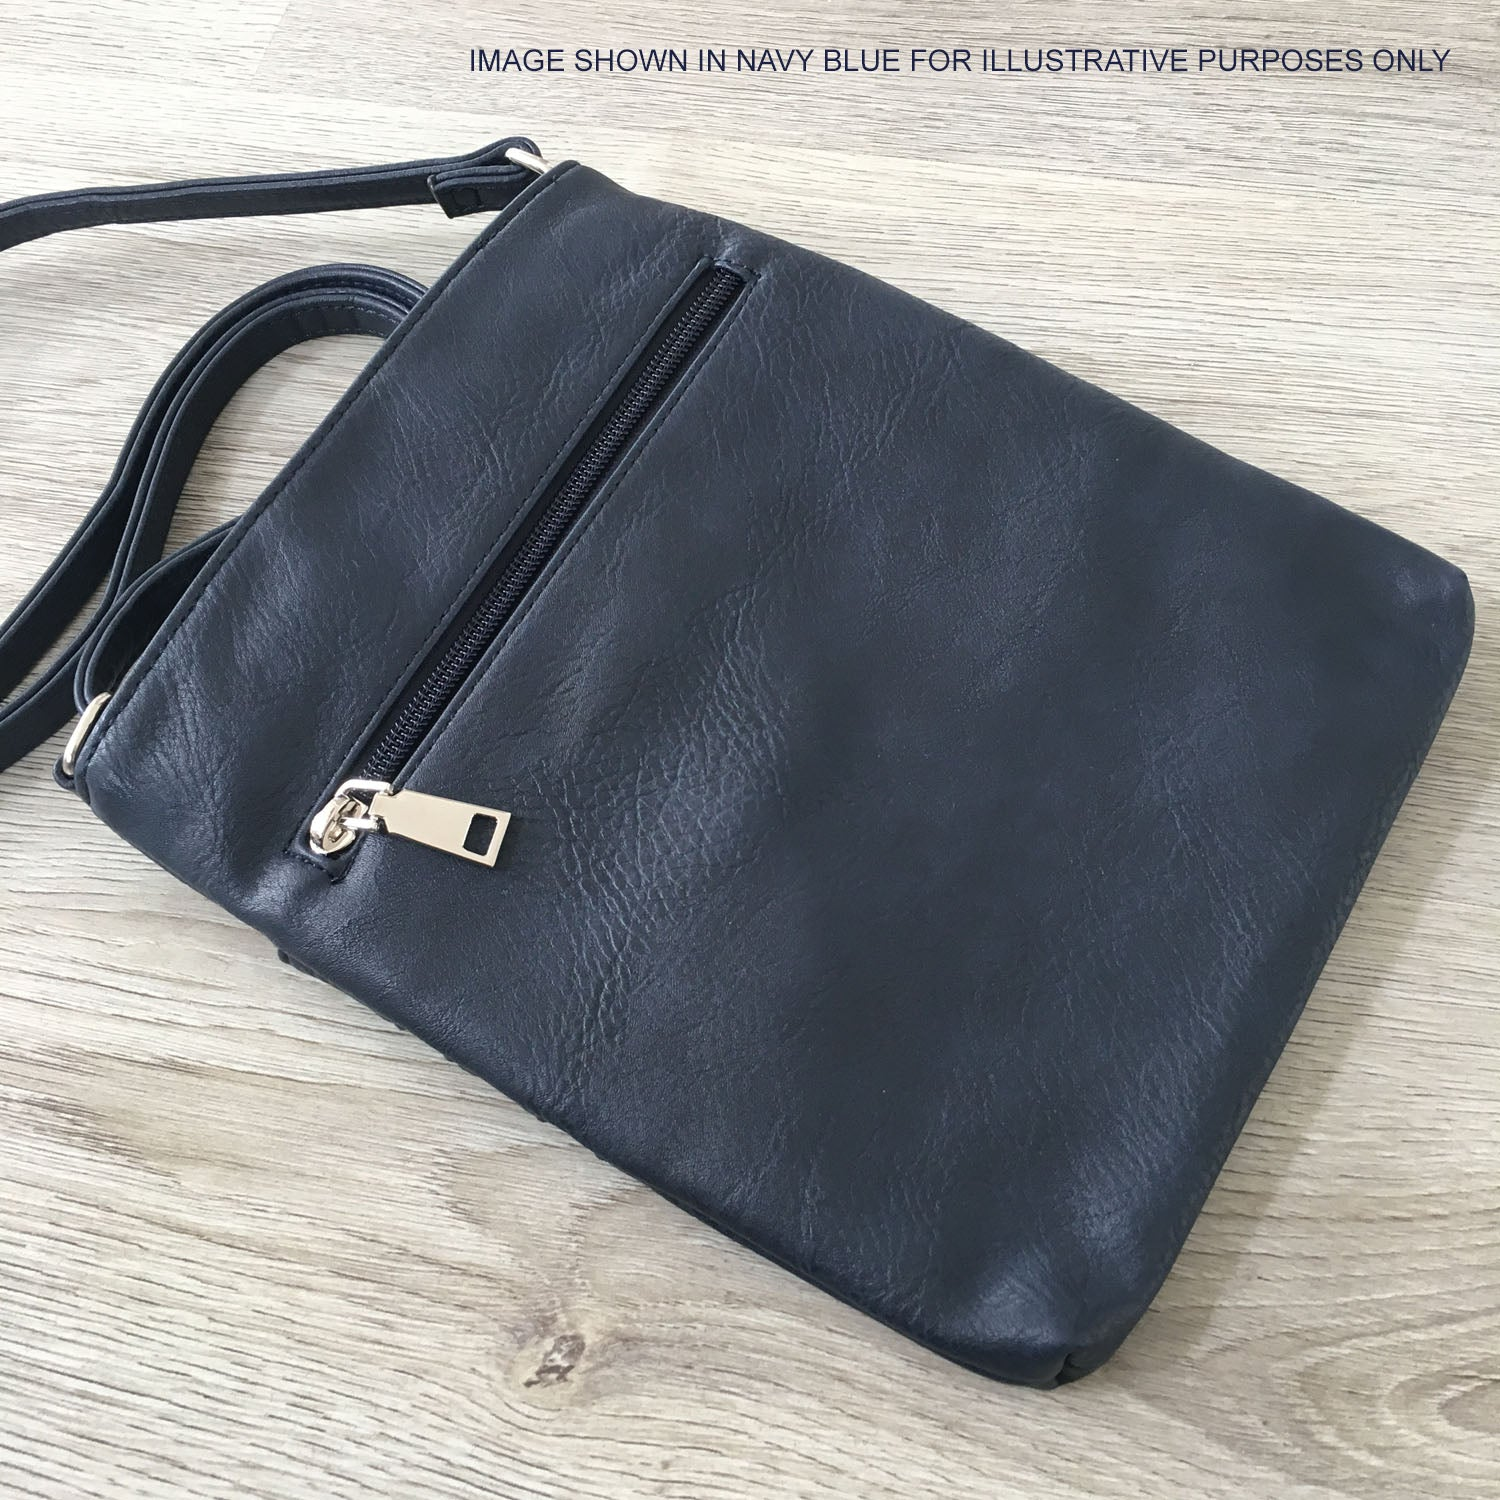 BLACK SLIM MULTI POCKET CROSS BODY BAG WITH LONG SHOULDER STRAP